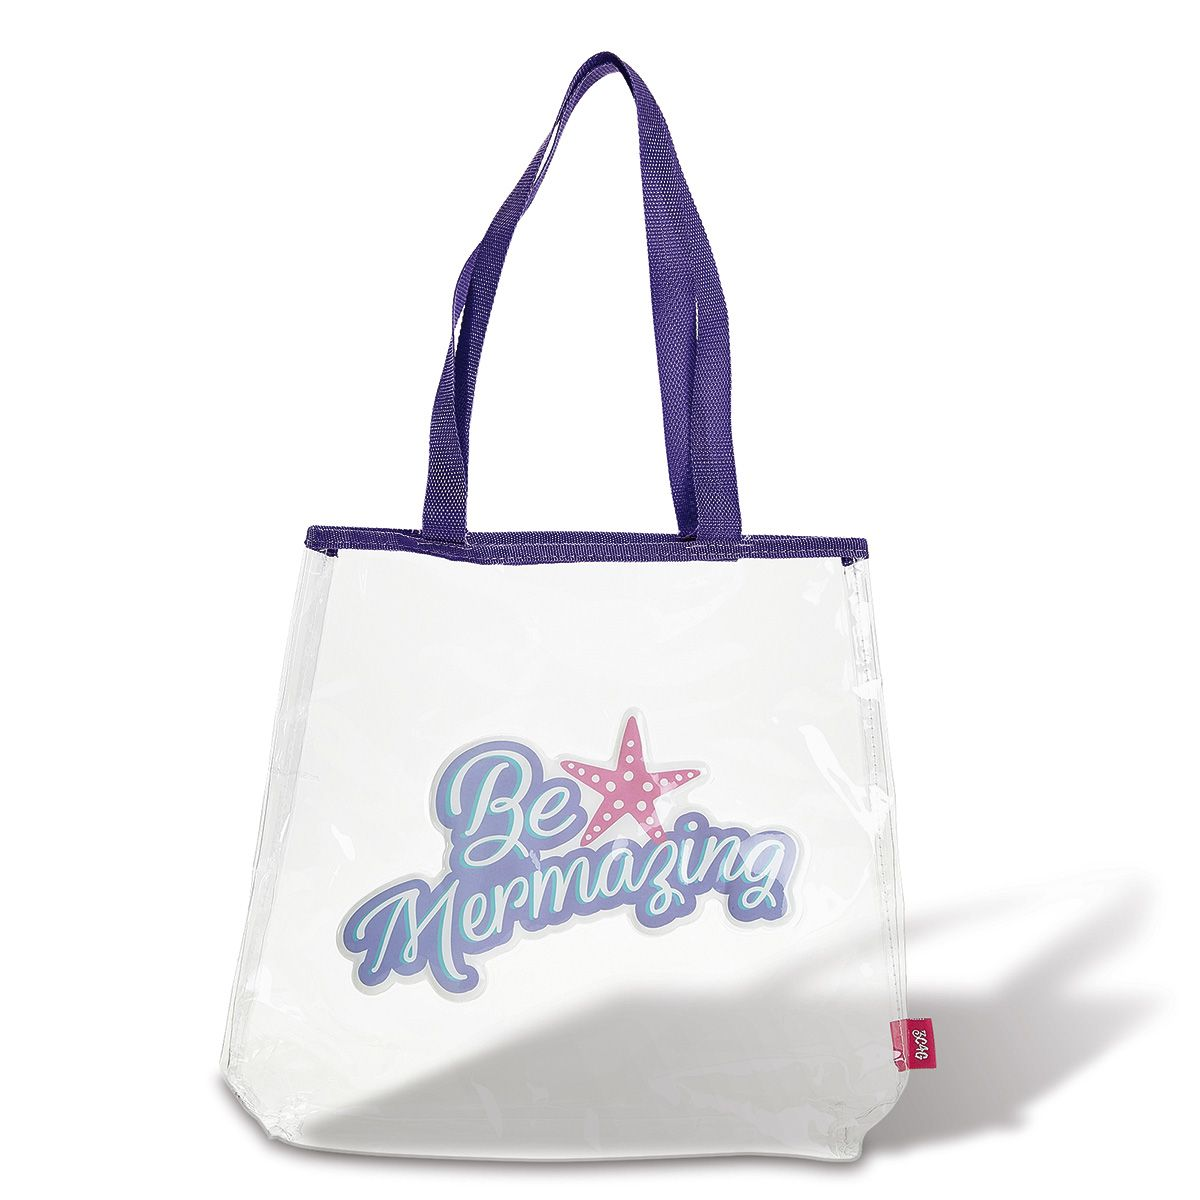 Personalized Towel and Matching Tote Bag